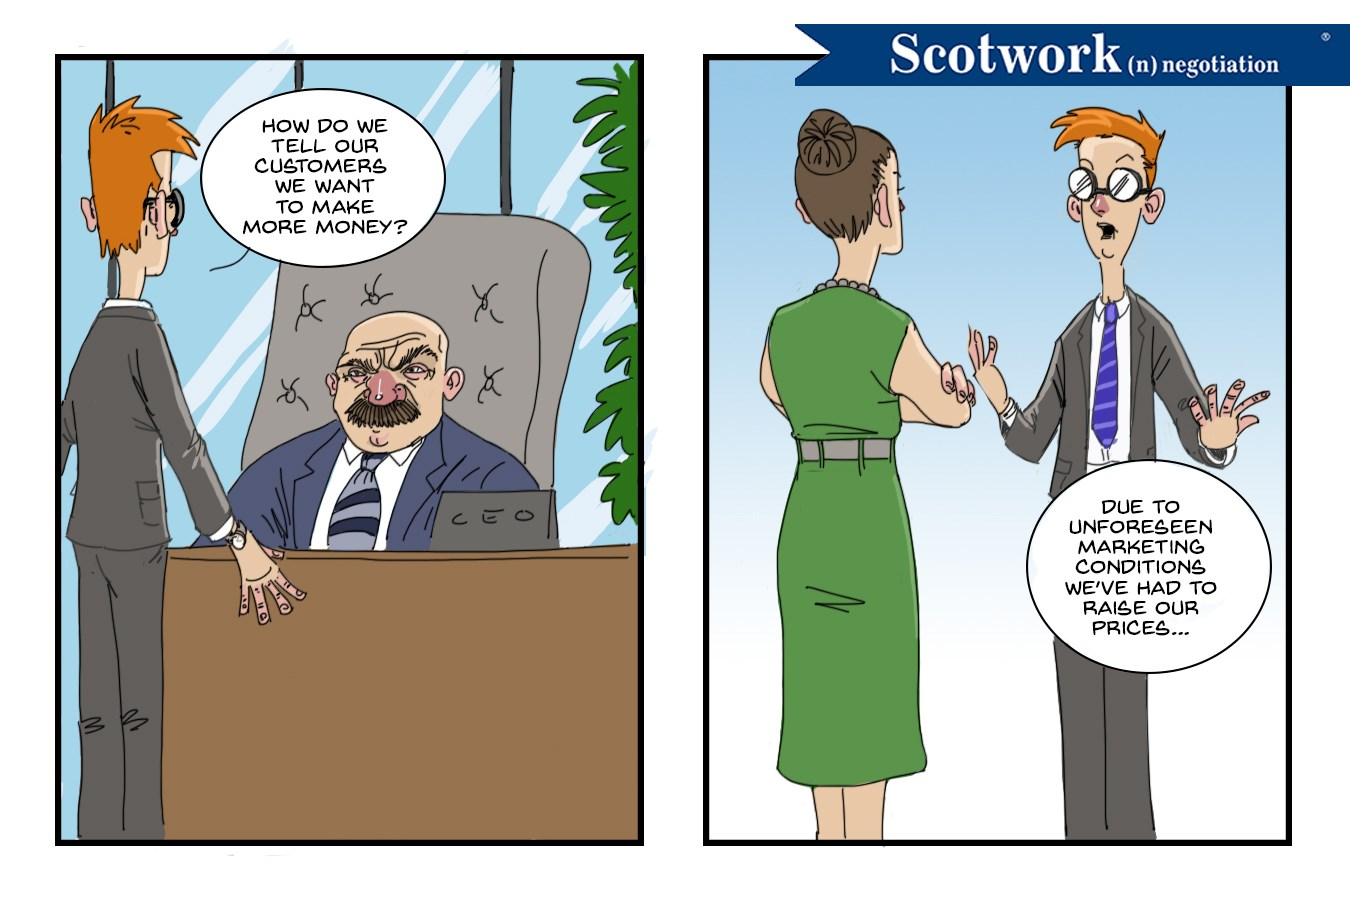 Scotwork_Comic_2018_11_05 Price Increase.jpg